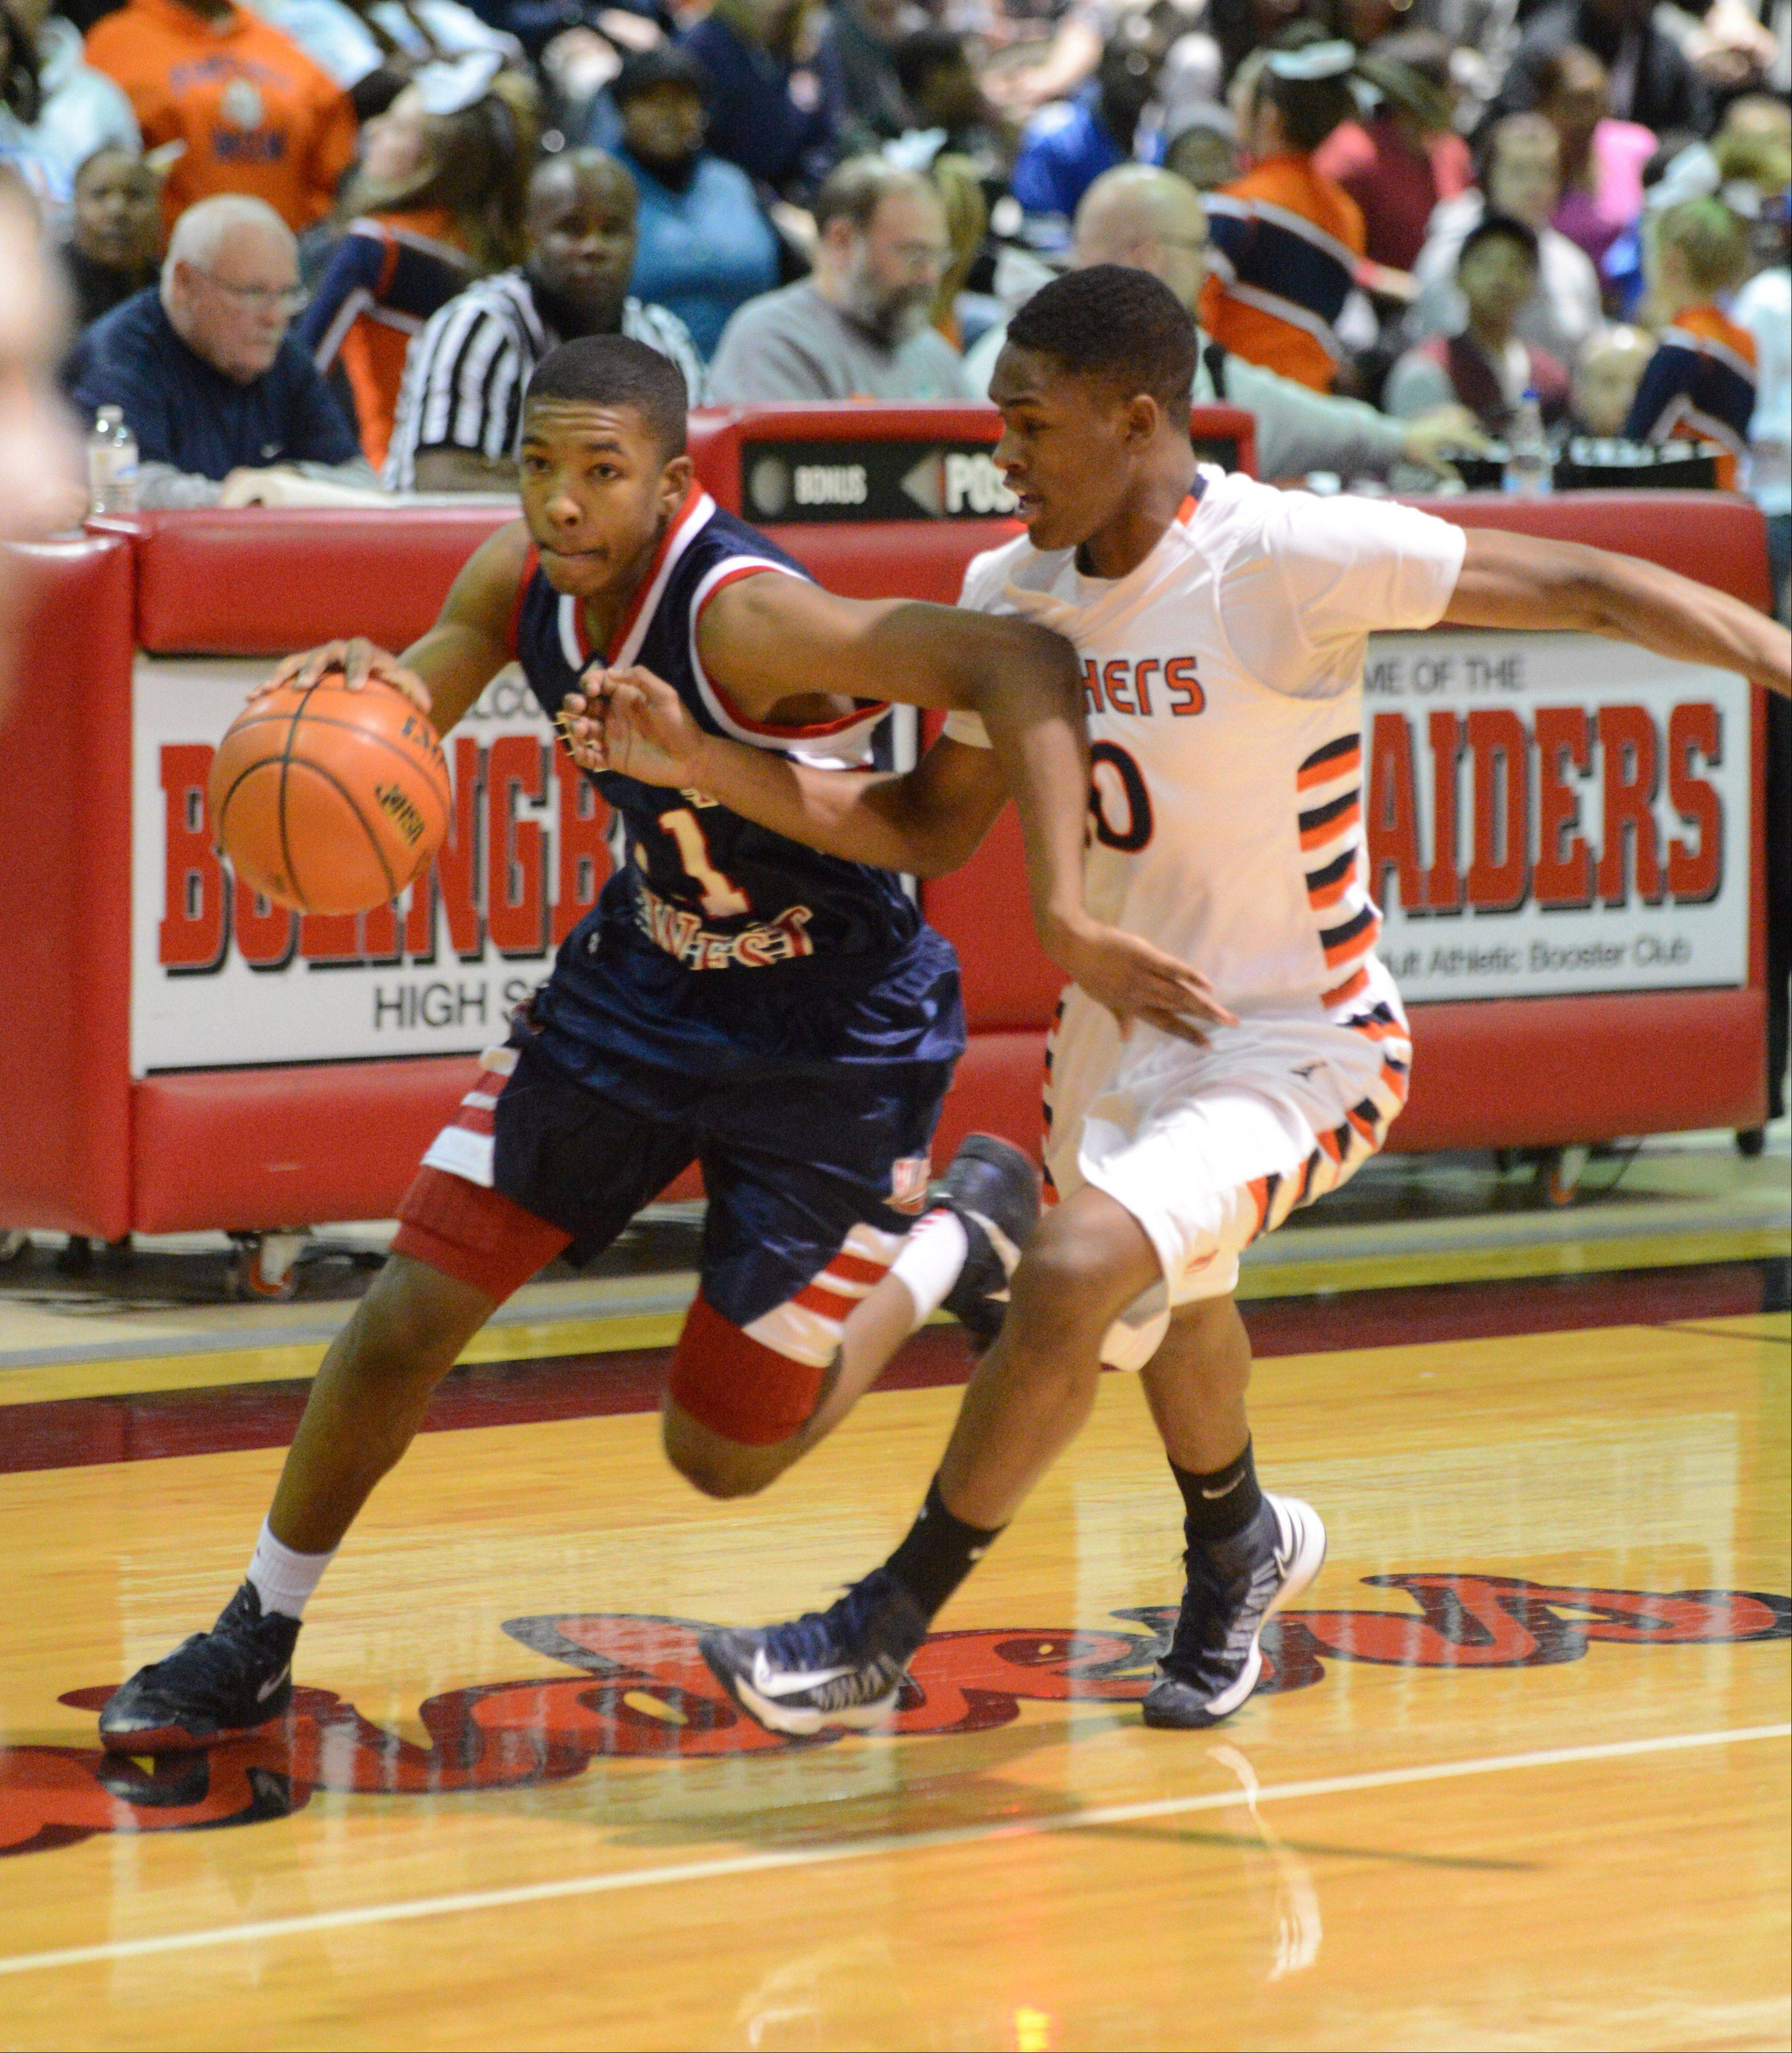 Jontrel Walker of West Aurora moves the ball alongside Jamaal Richardson of Oswego.